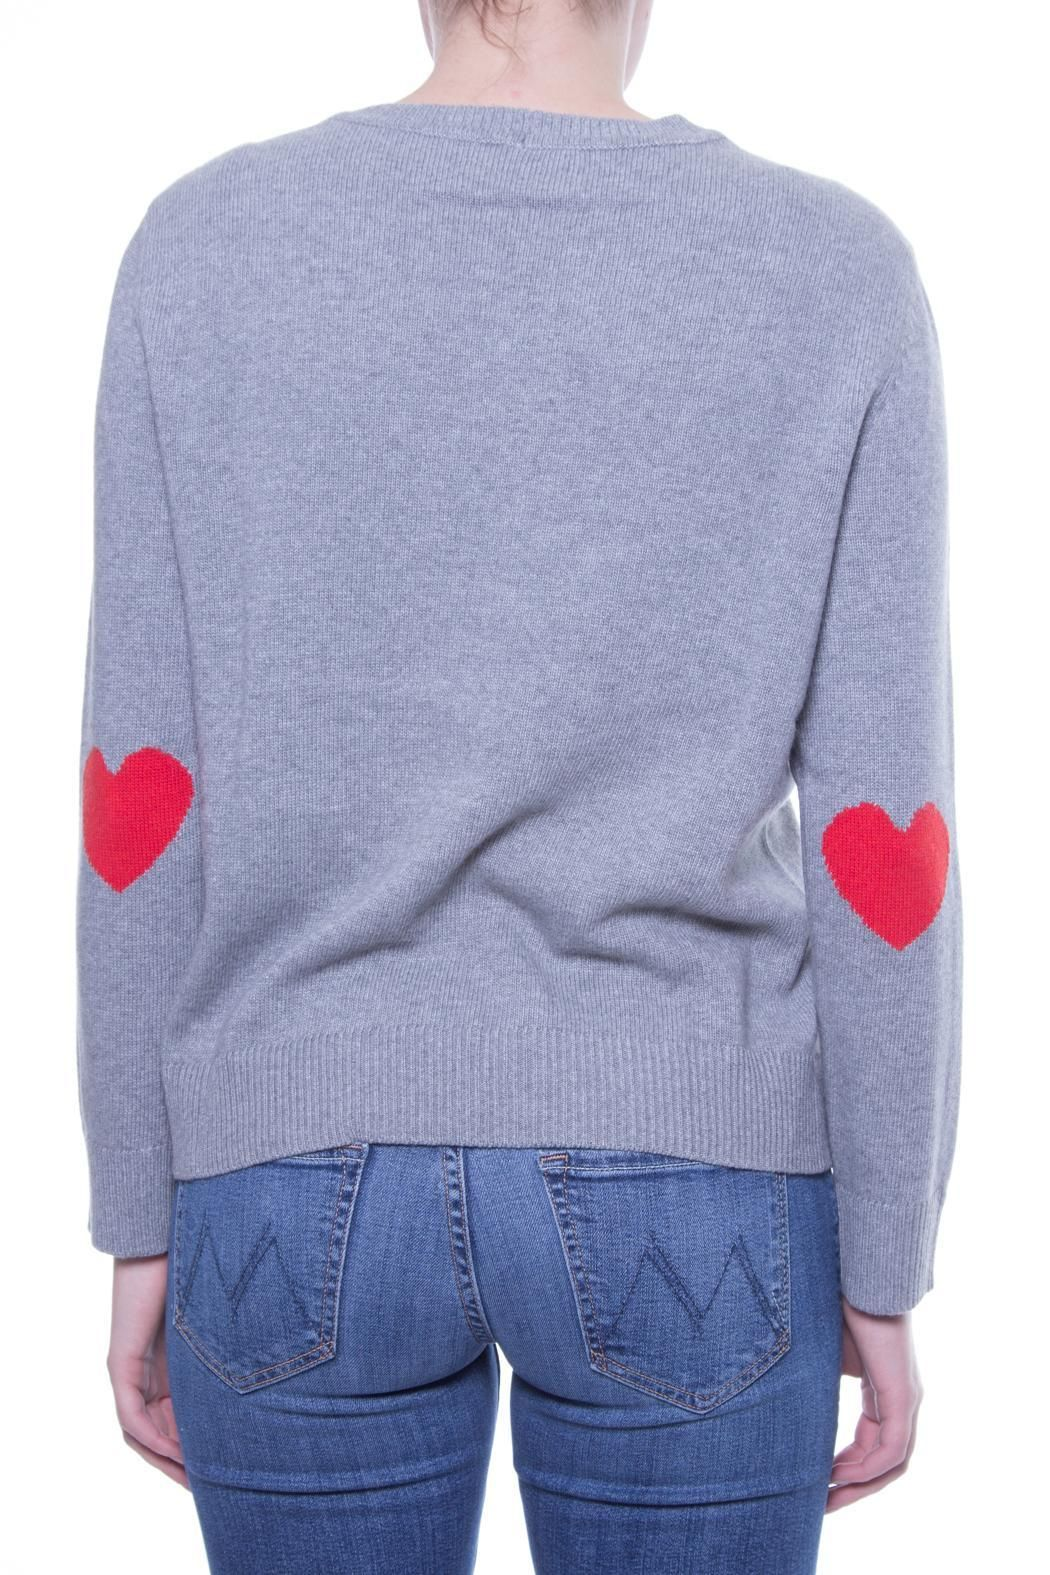 RED VALENTINO Heart Elbow Sweater   A simple and sweet RED Valentino sweater with red hearts over the elbows. Pair with a pencil skirt for work, or a pair of skinny jeans for a casual day outfit.  [Available from Perch on Shoptiques]